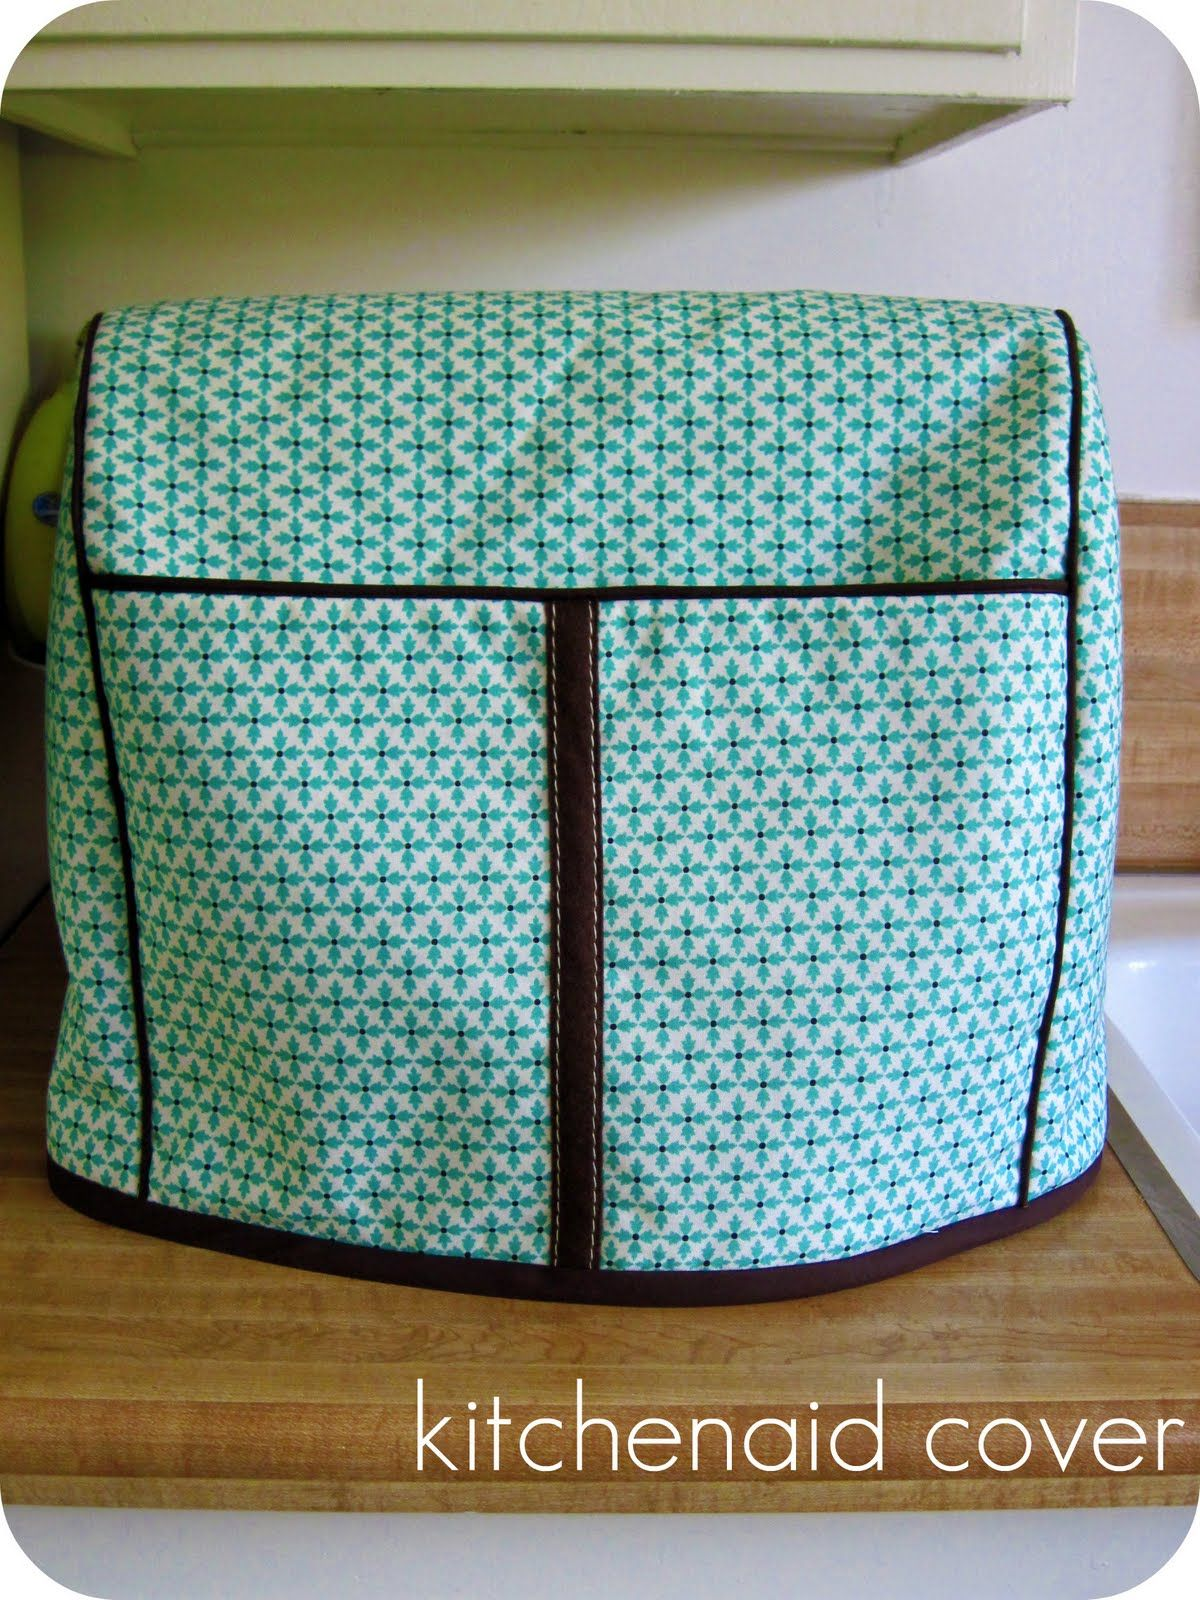 Kitchenaid cover.  I want to make one